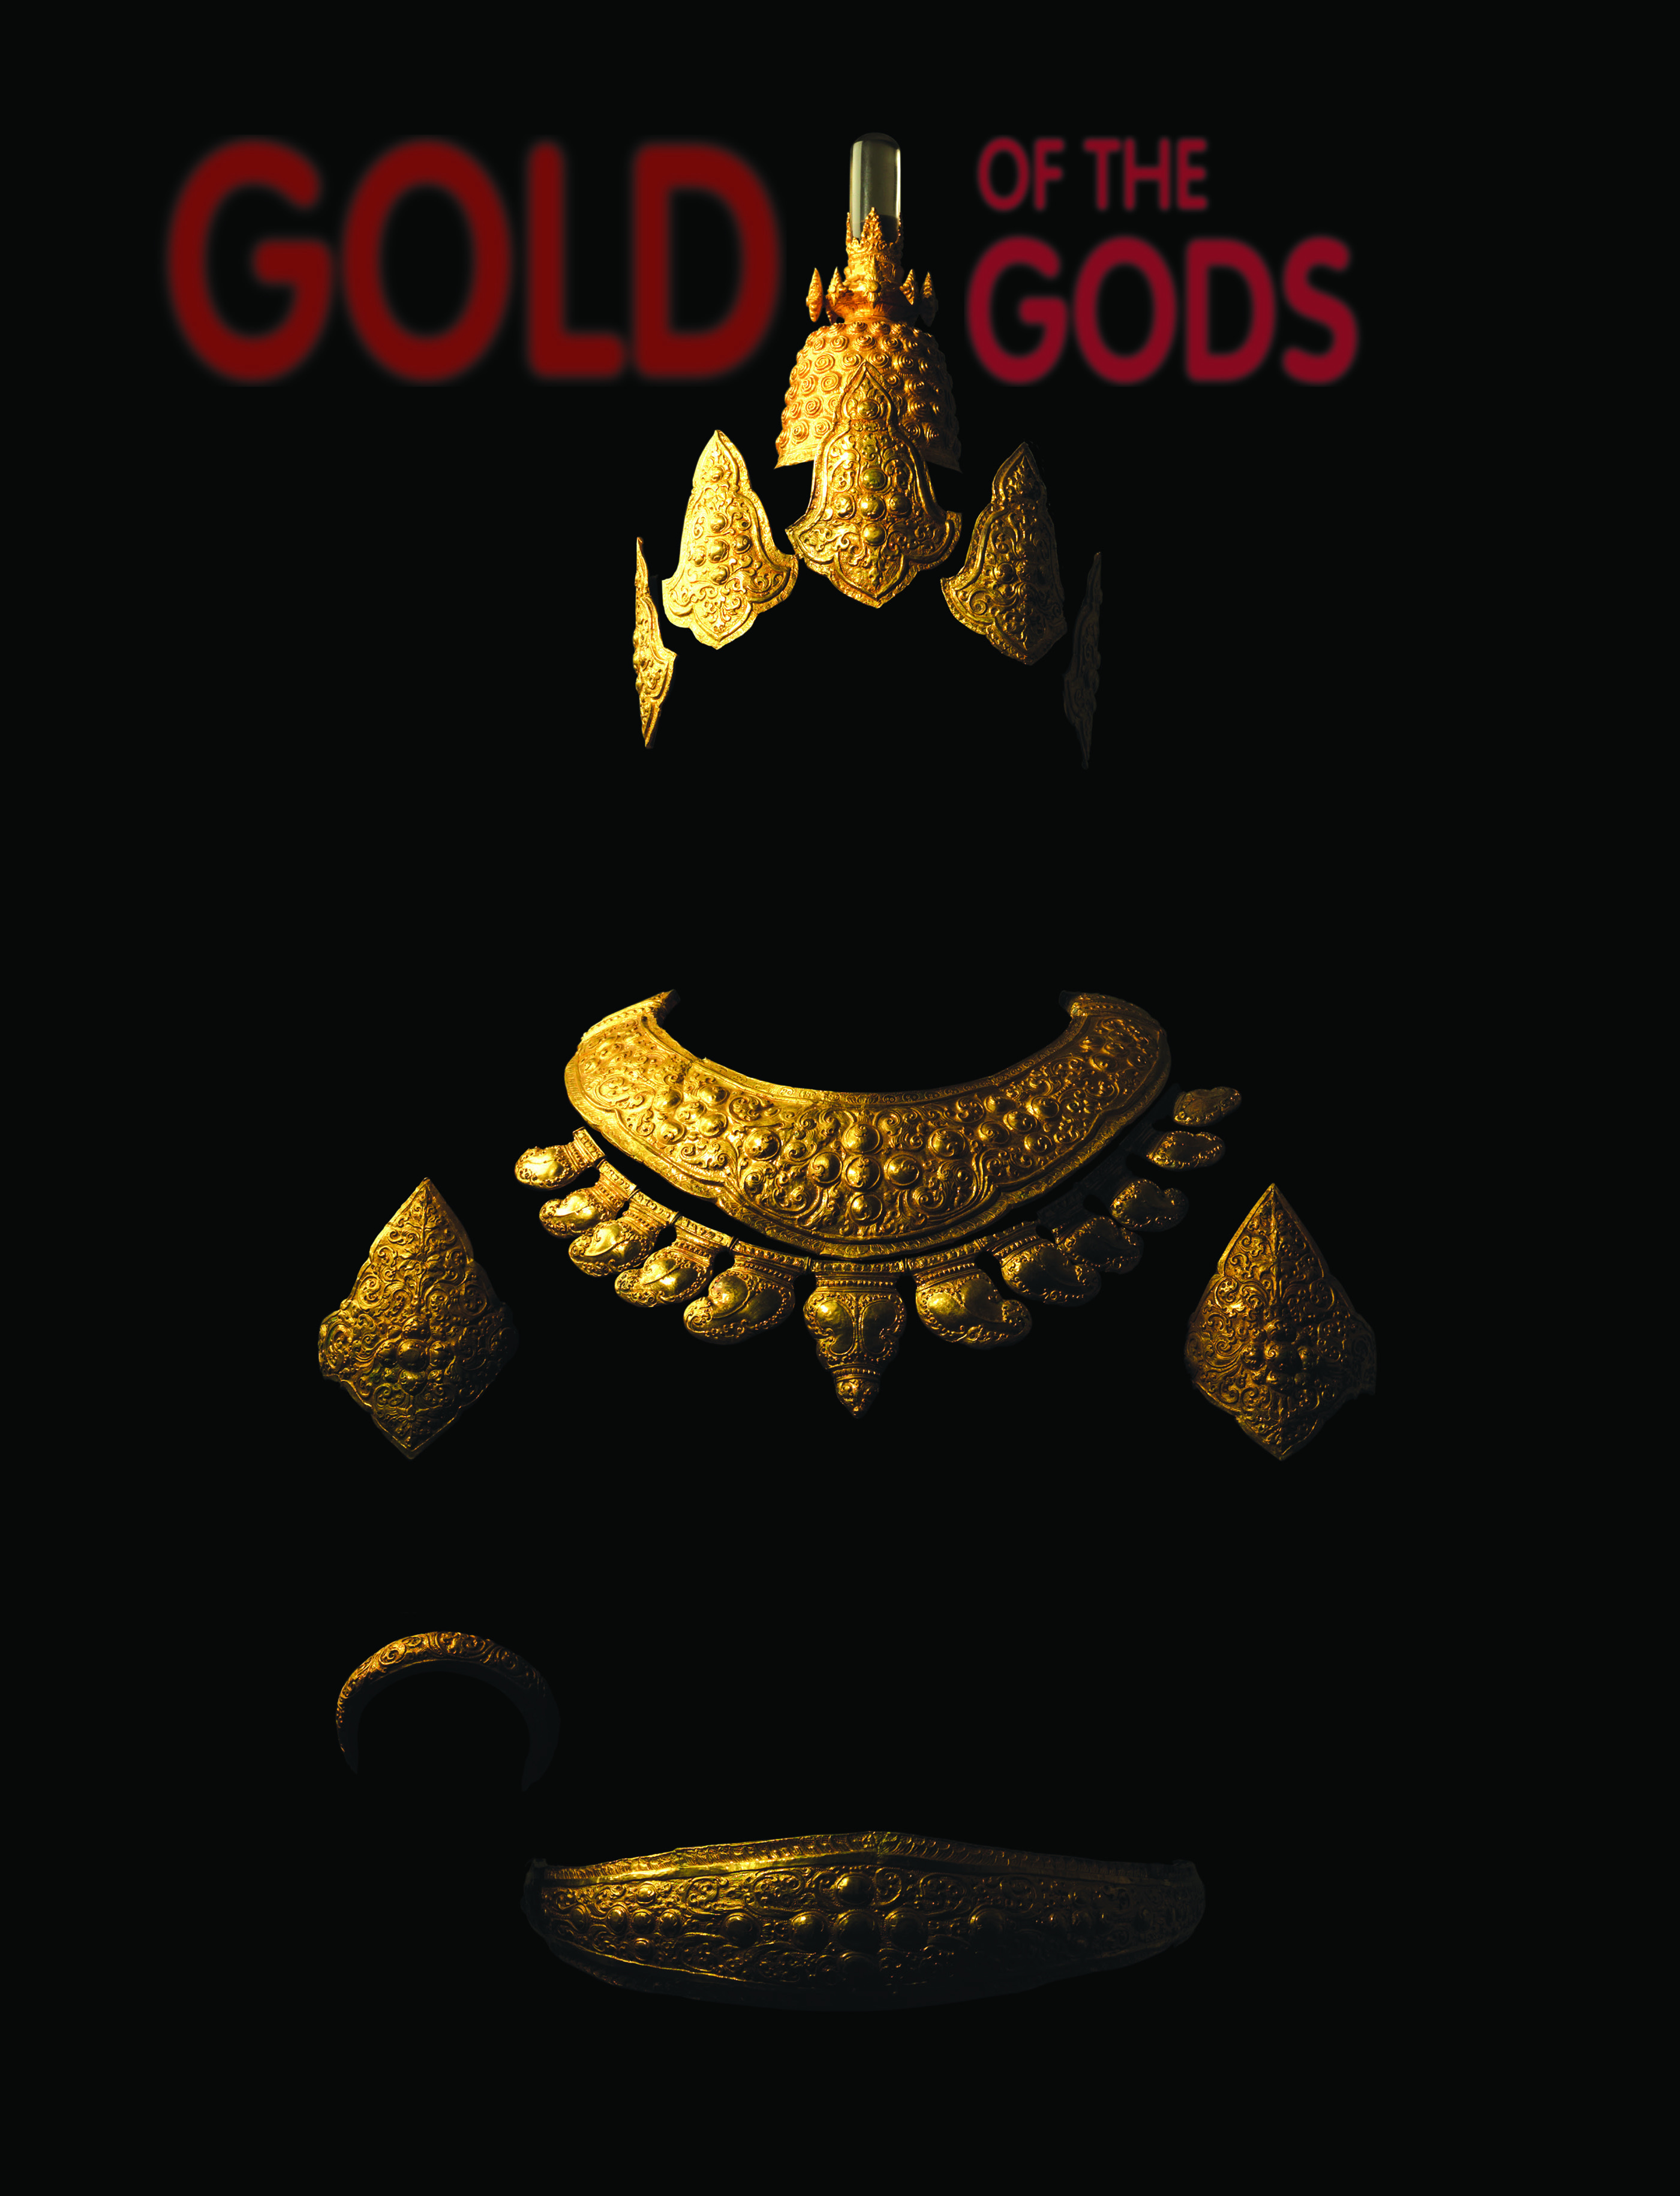 Gold of the Gods